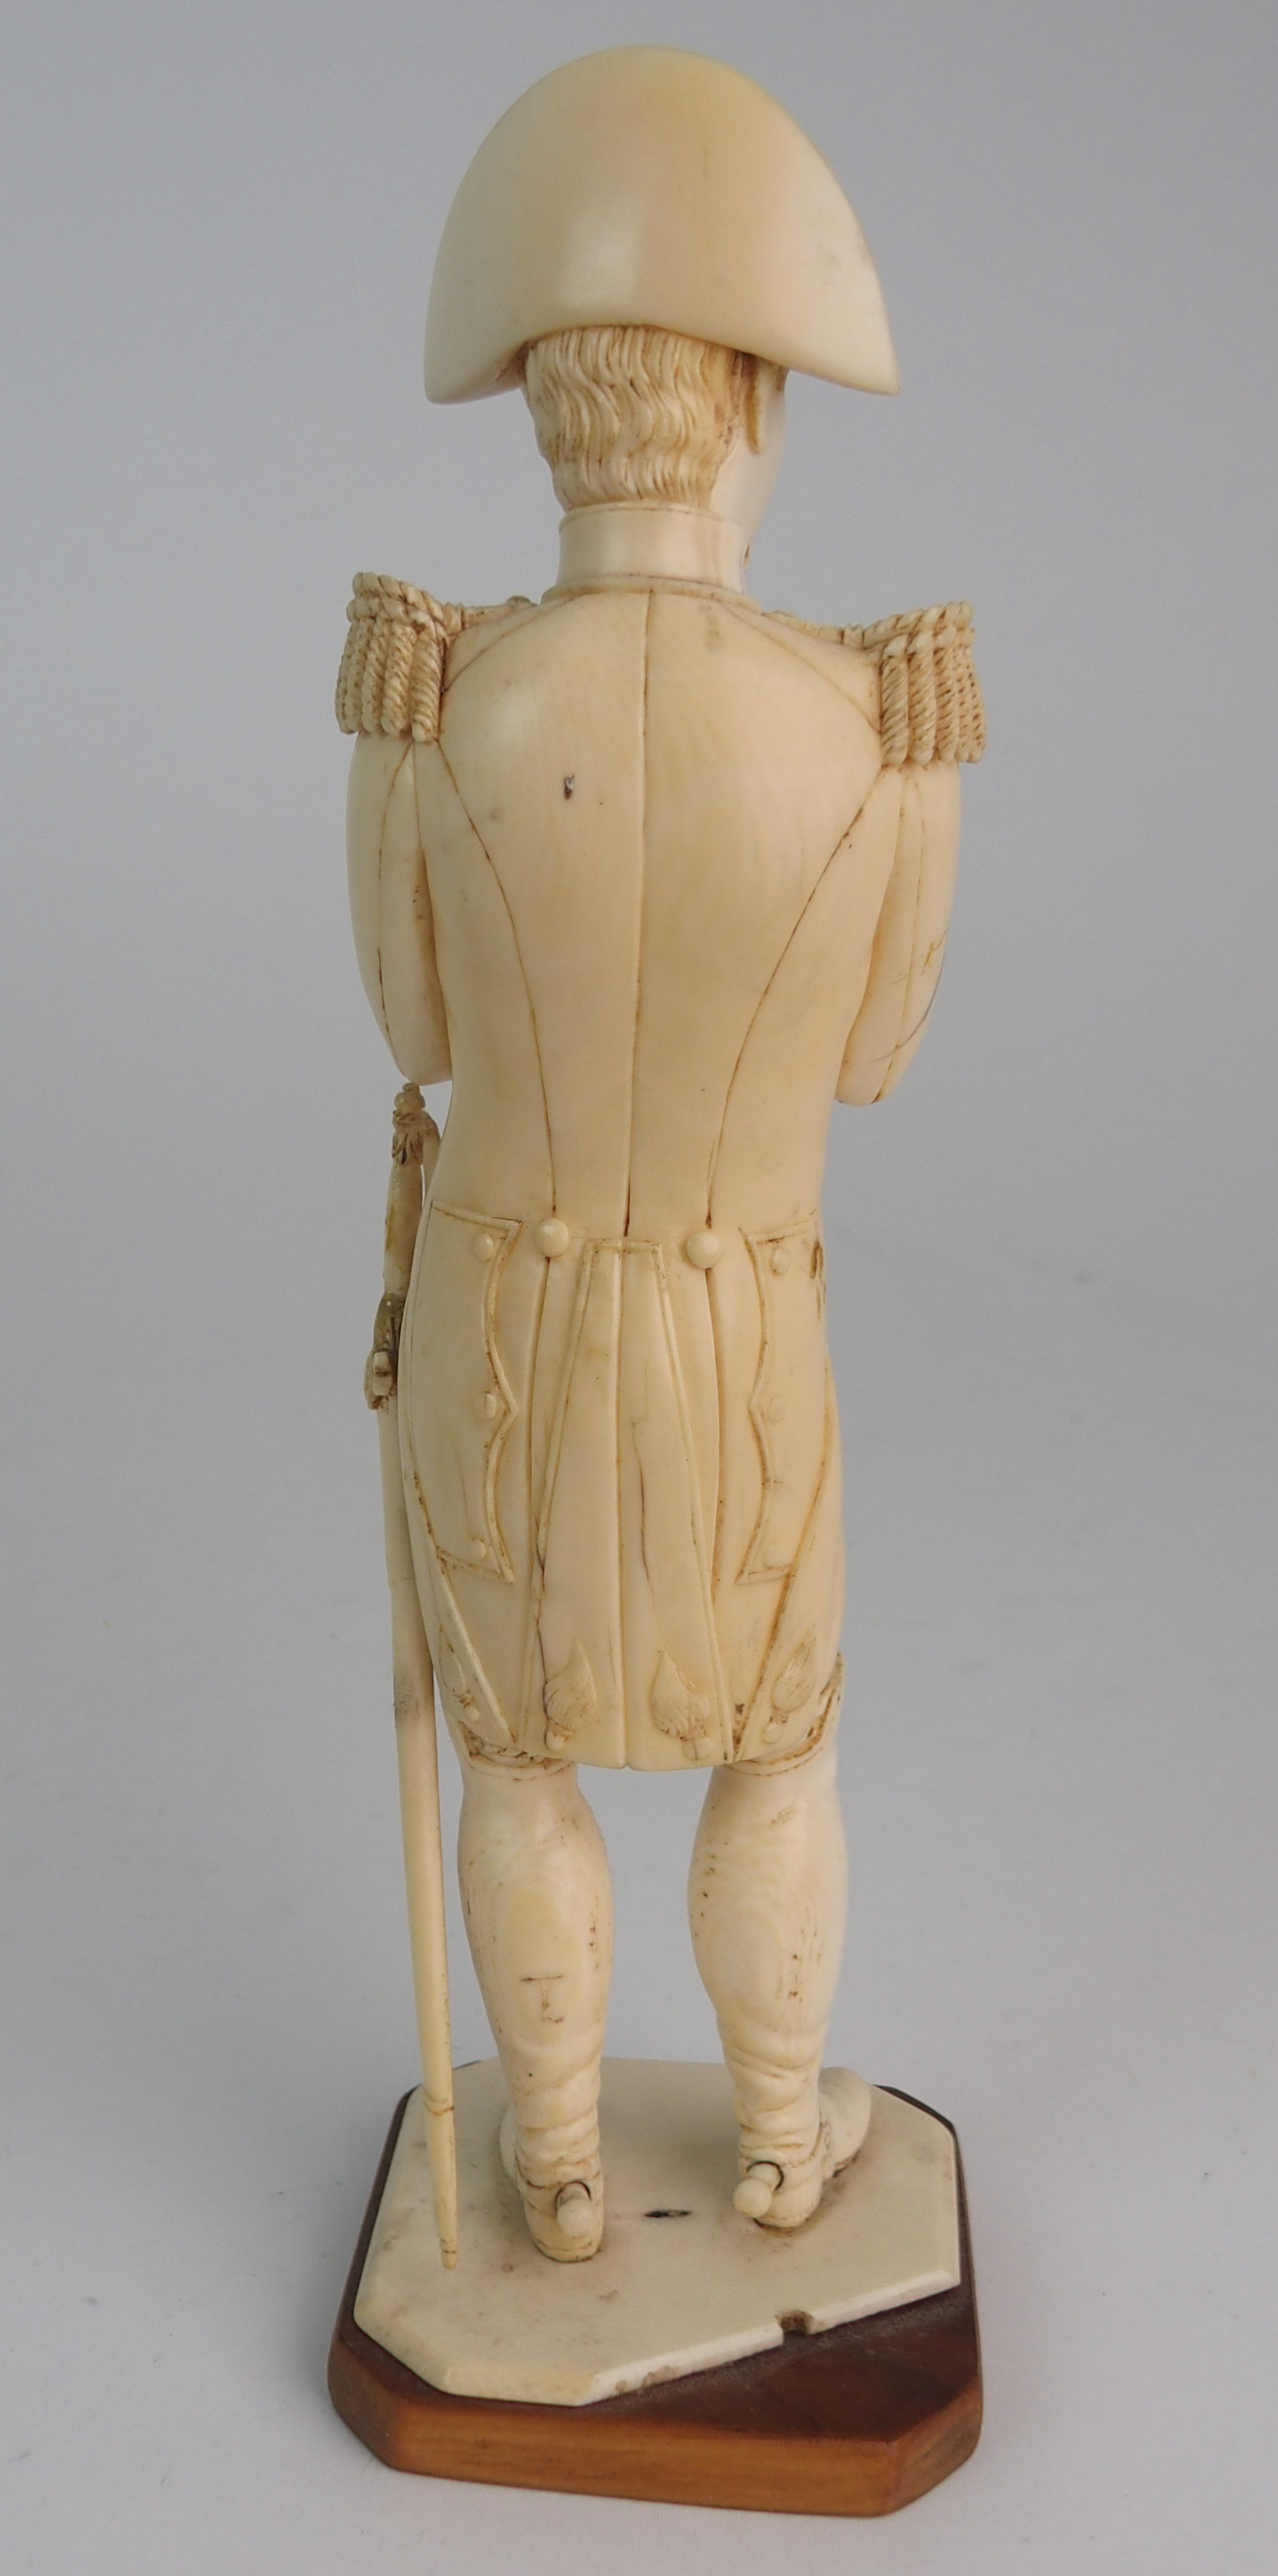 A LATE 19TH/EARLY 20TH CENTURY CARVED IVORY MODEL OF NAPOLEON in uniform with crossed arms, on - Image 6 of 9